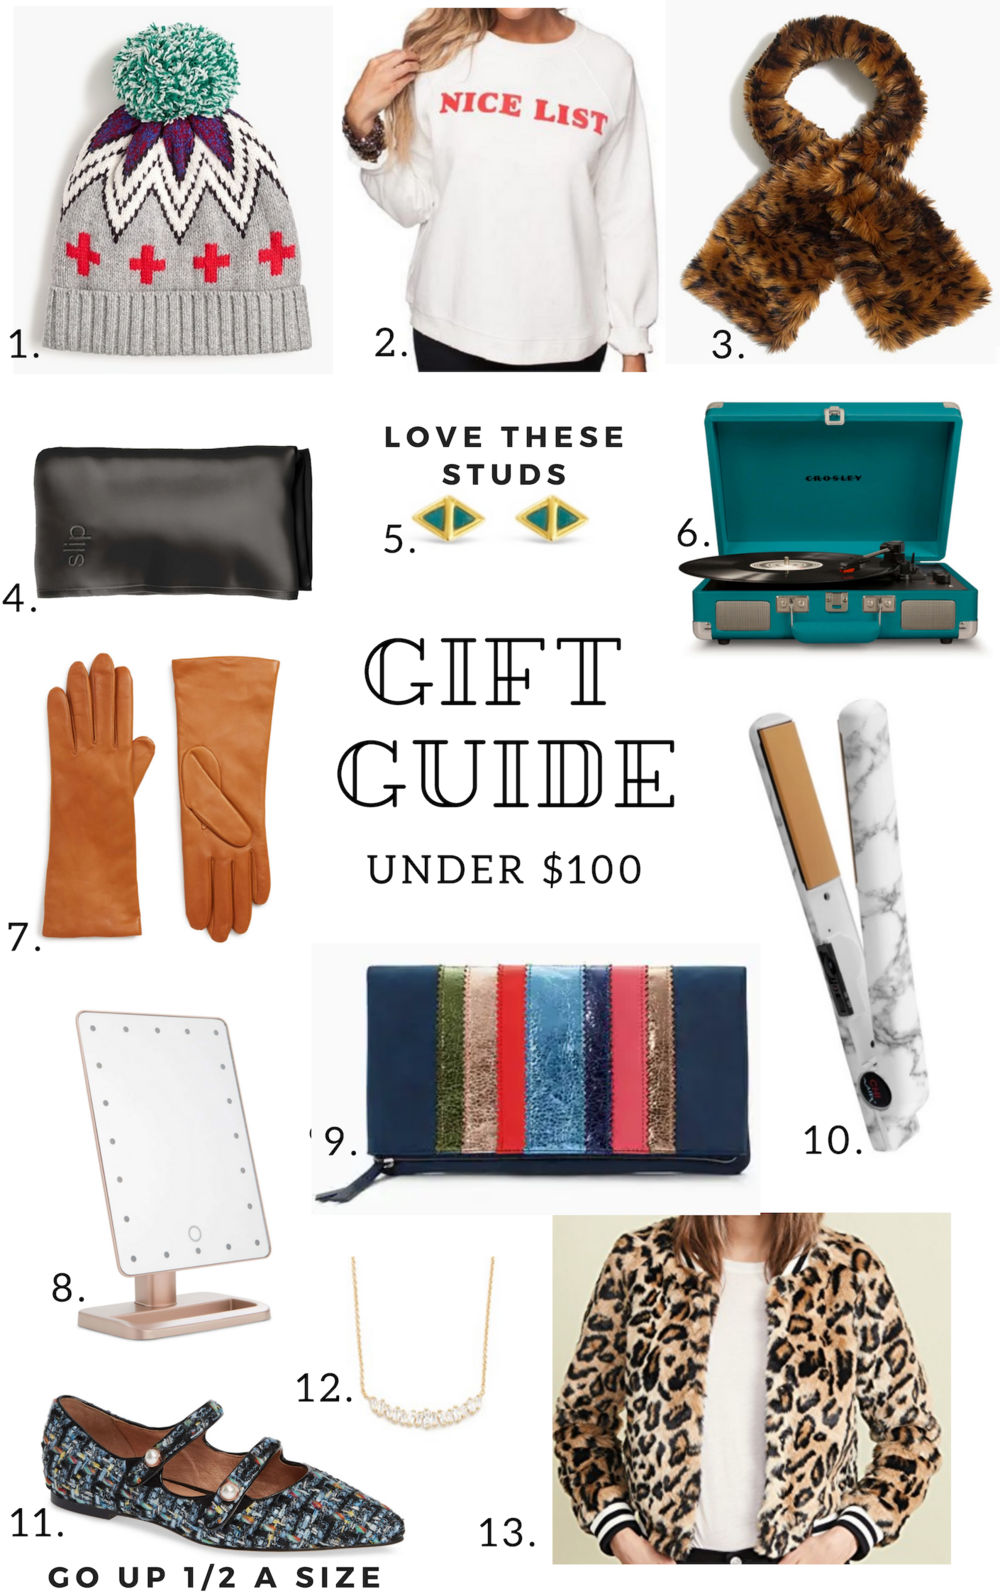 Gifts under $100